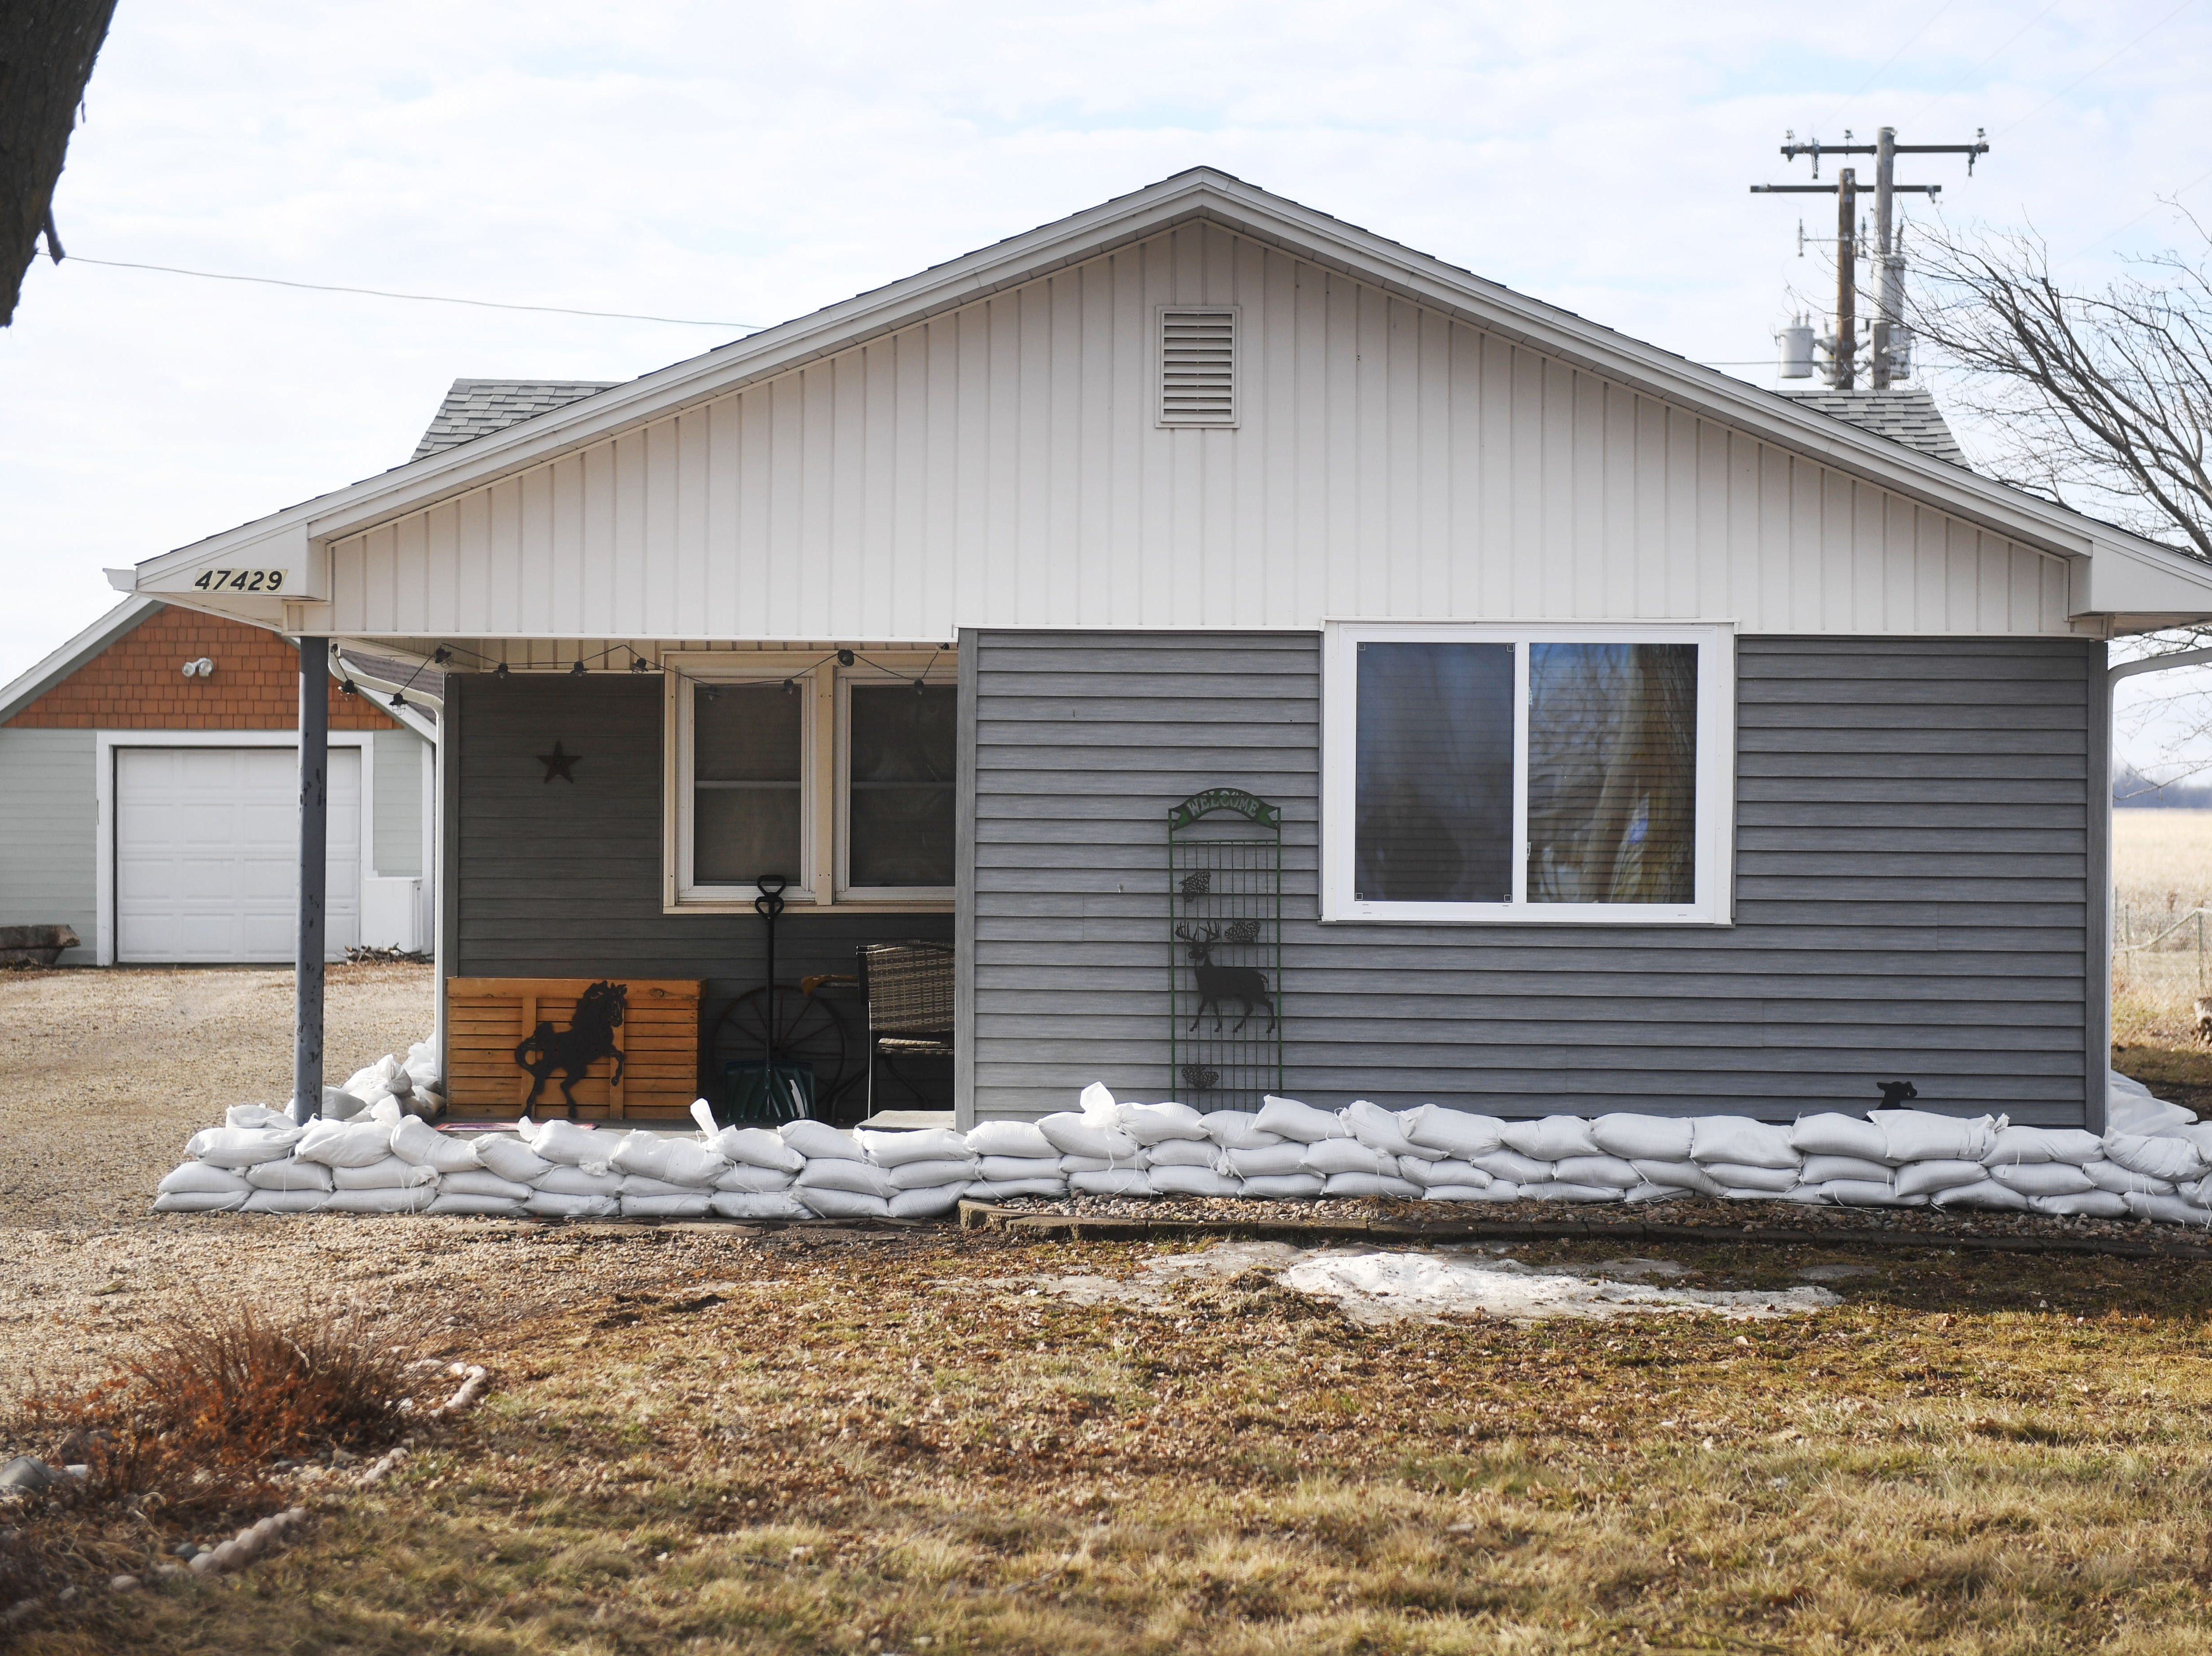 Homeowners placed sandbags, tarp and tape up around their home to keep from flooding in Renner Monday, March 25, in Renner, S.D.